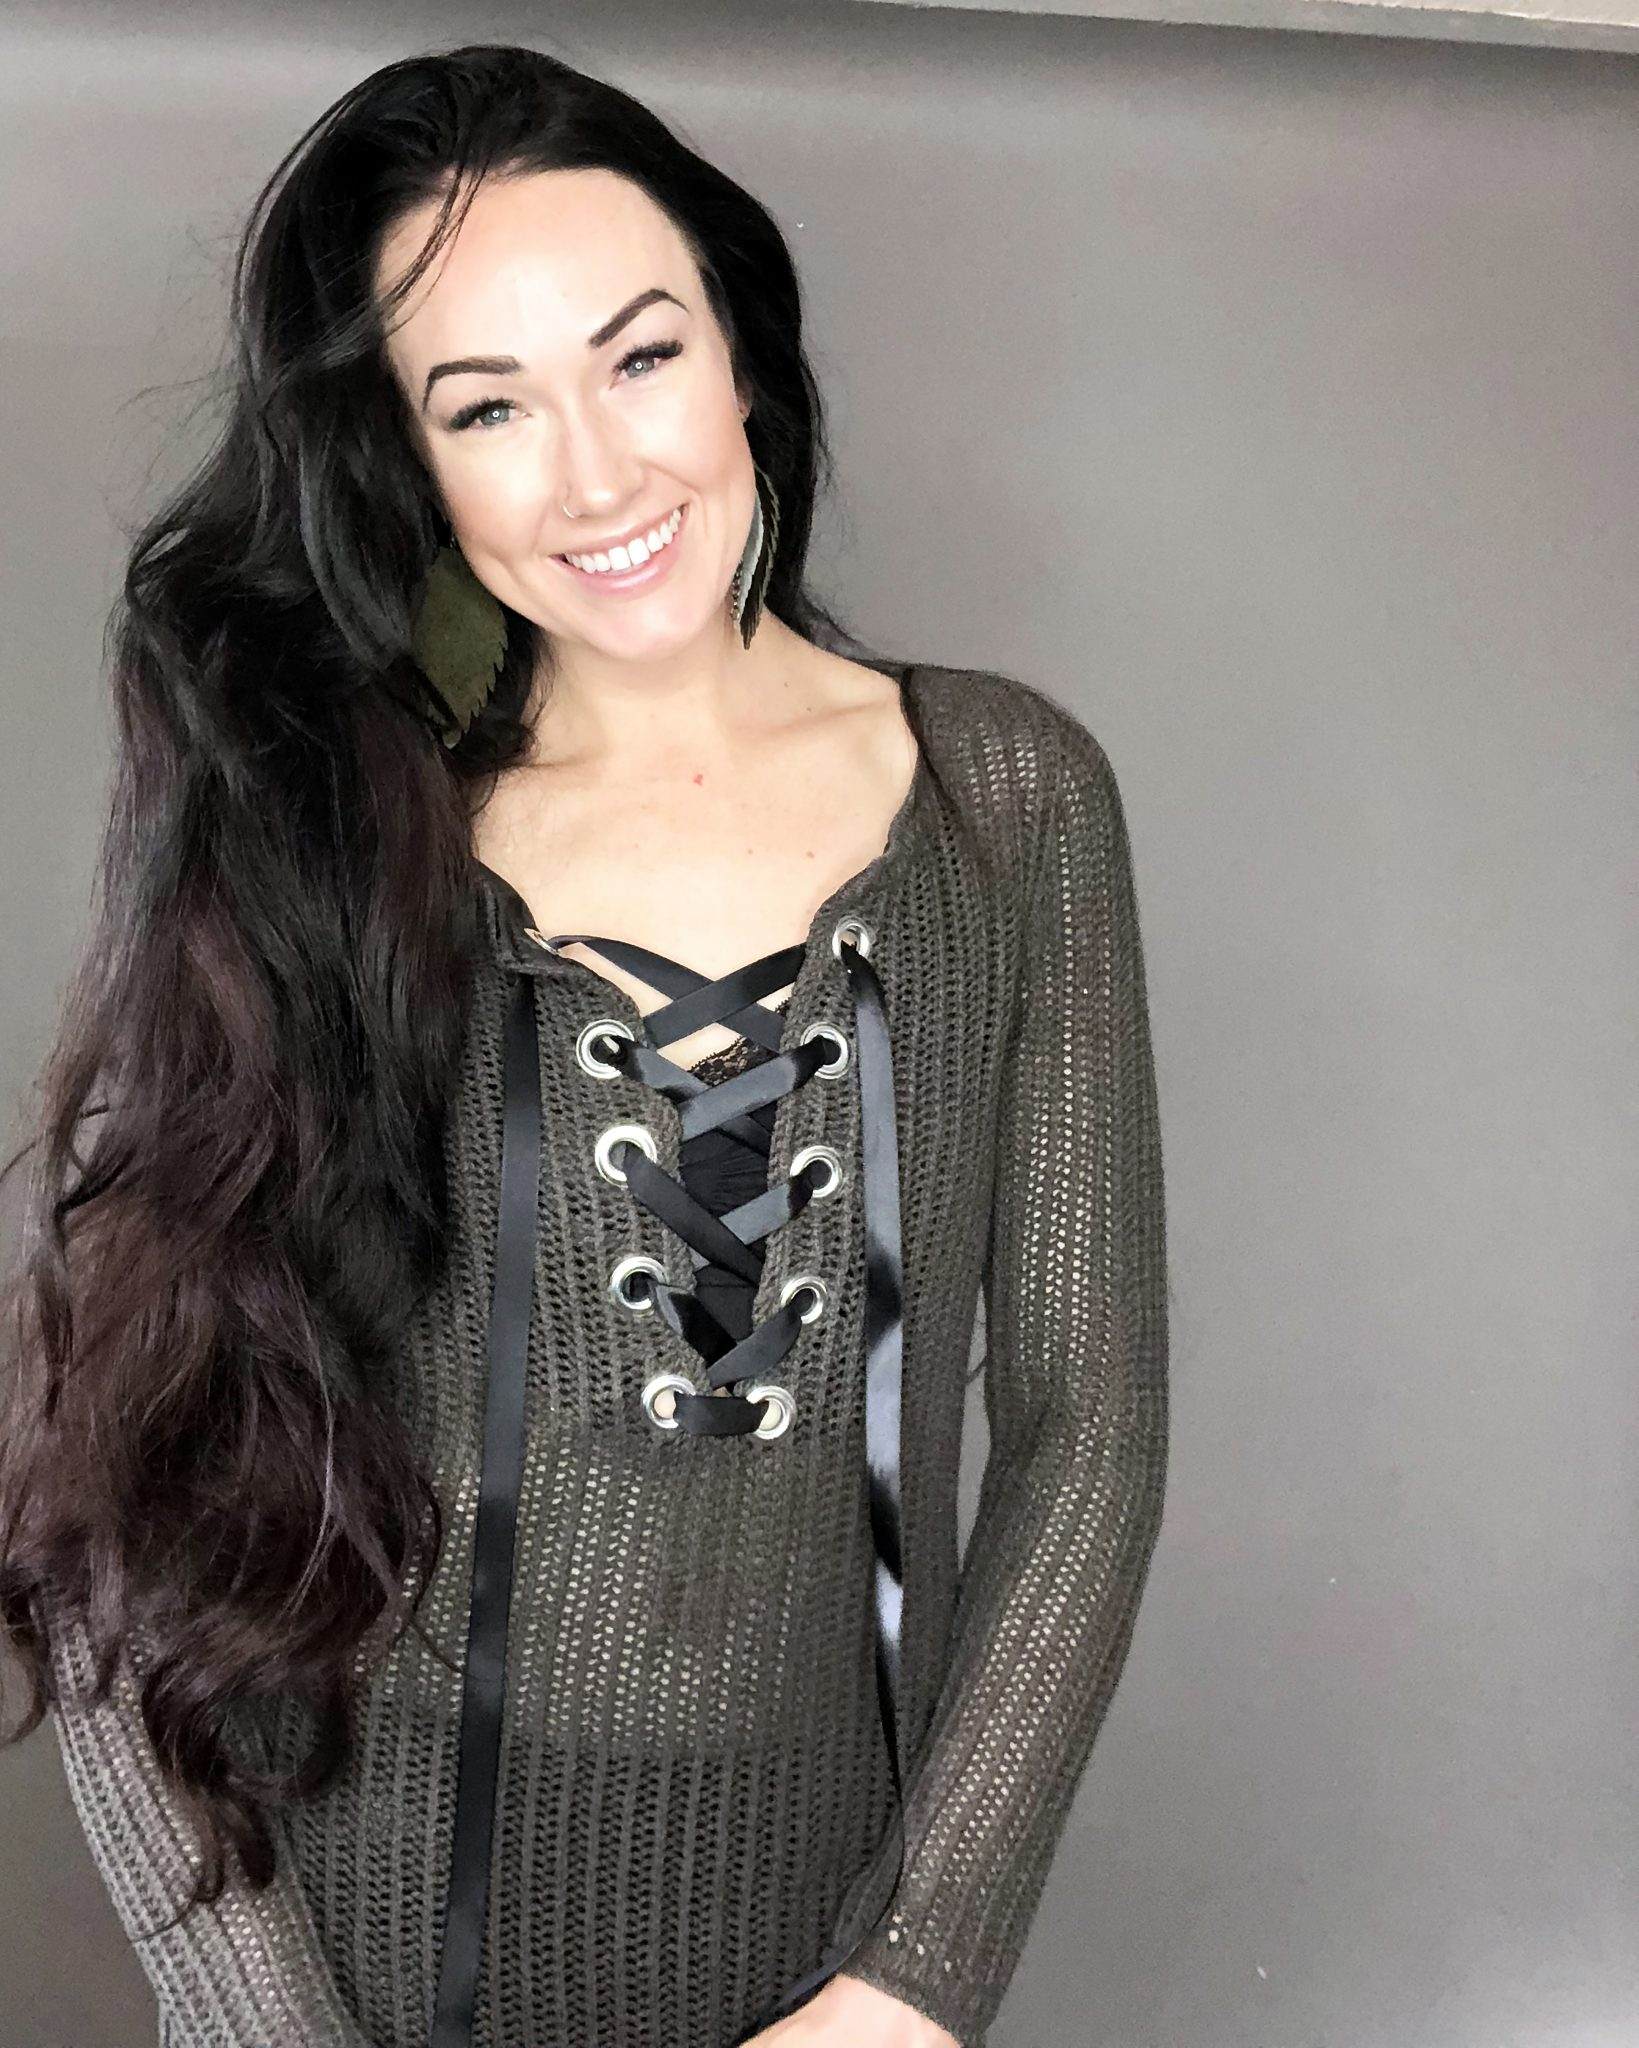 27d1bab443 How To Make A Sweater - A DIY Grommet Refashion - Creative Fashion Blog